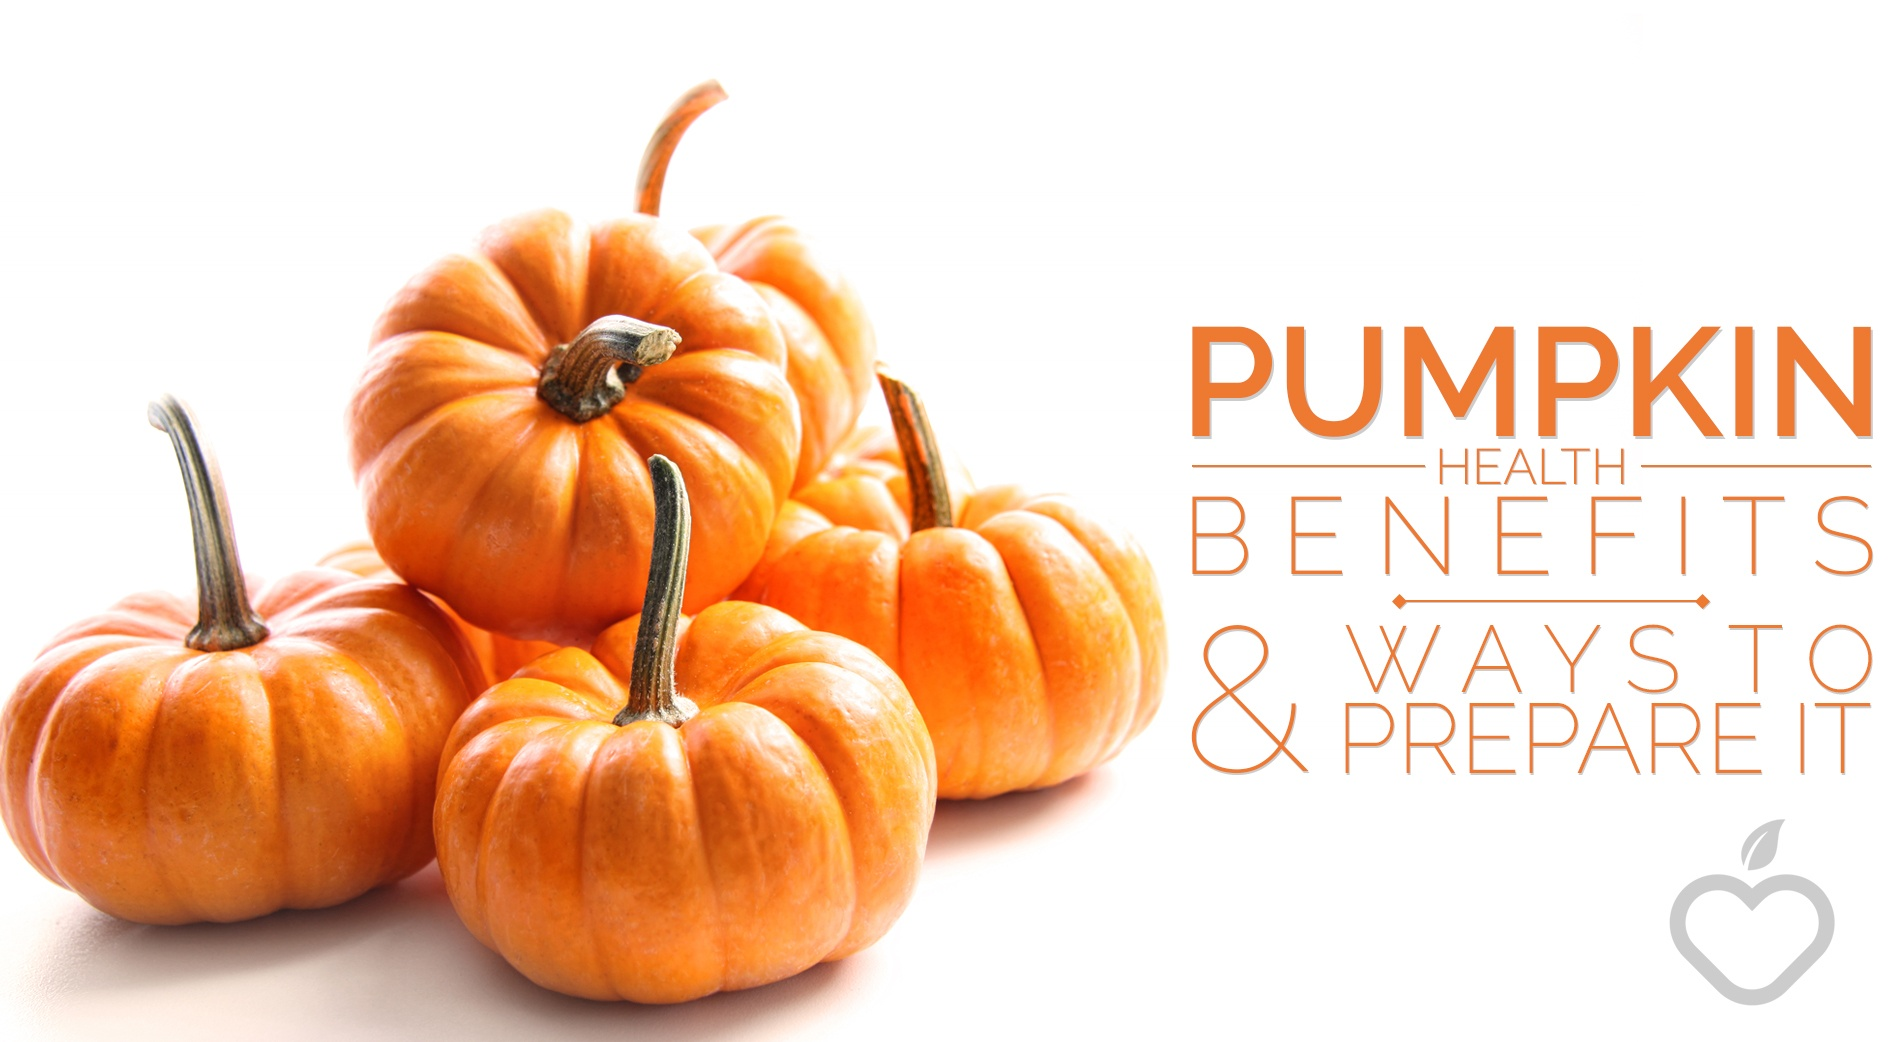 Pumpkin Health Benefits Image Design 1 - Pumpkin Health Benefits (And Ways to Prepare It)